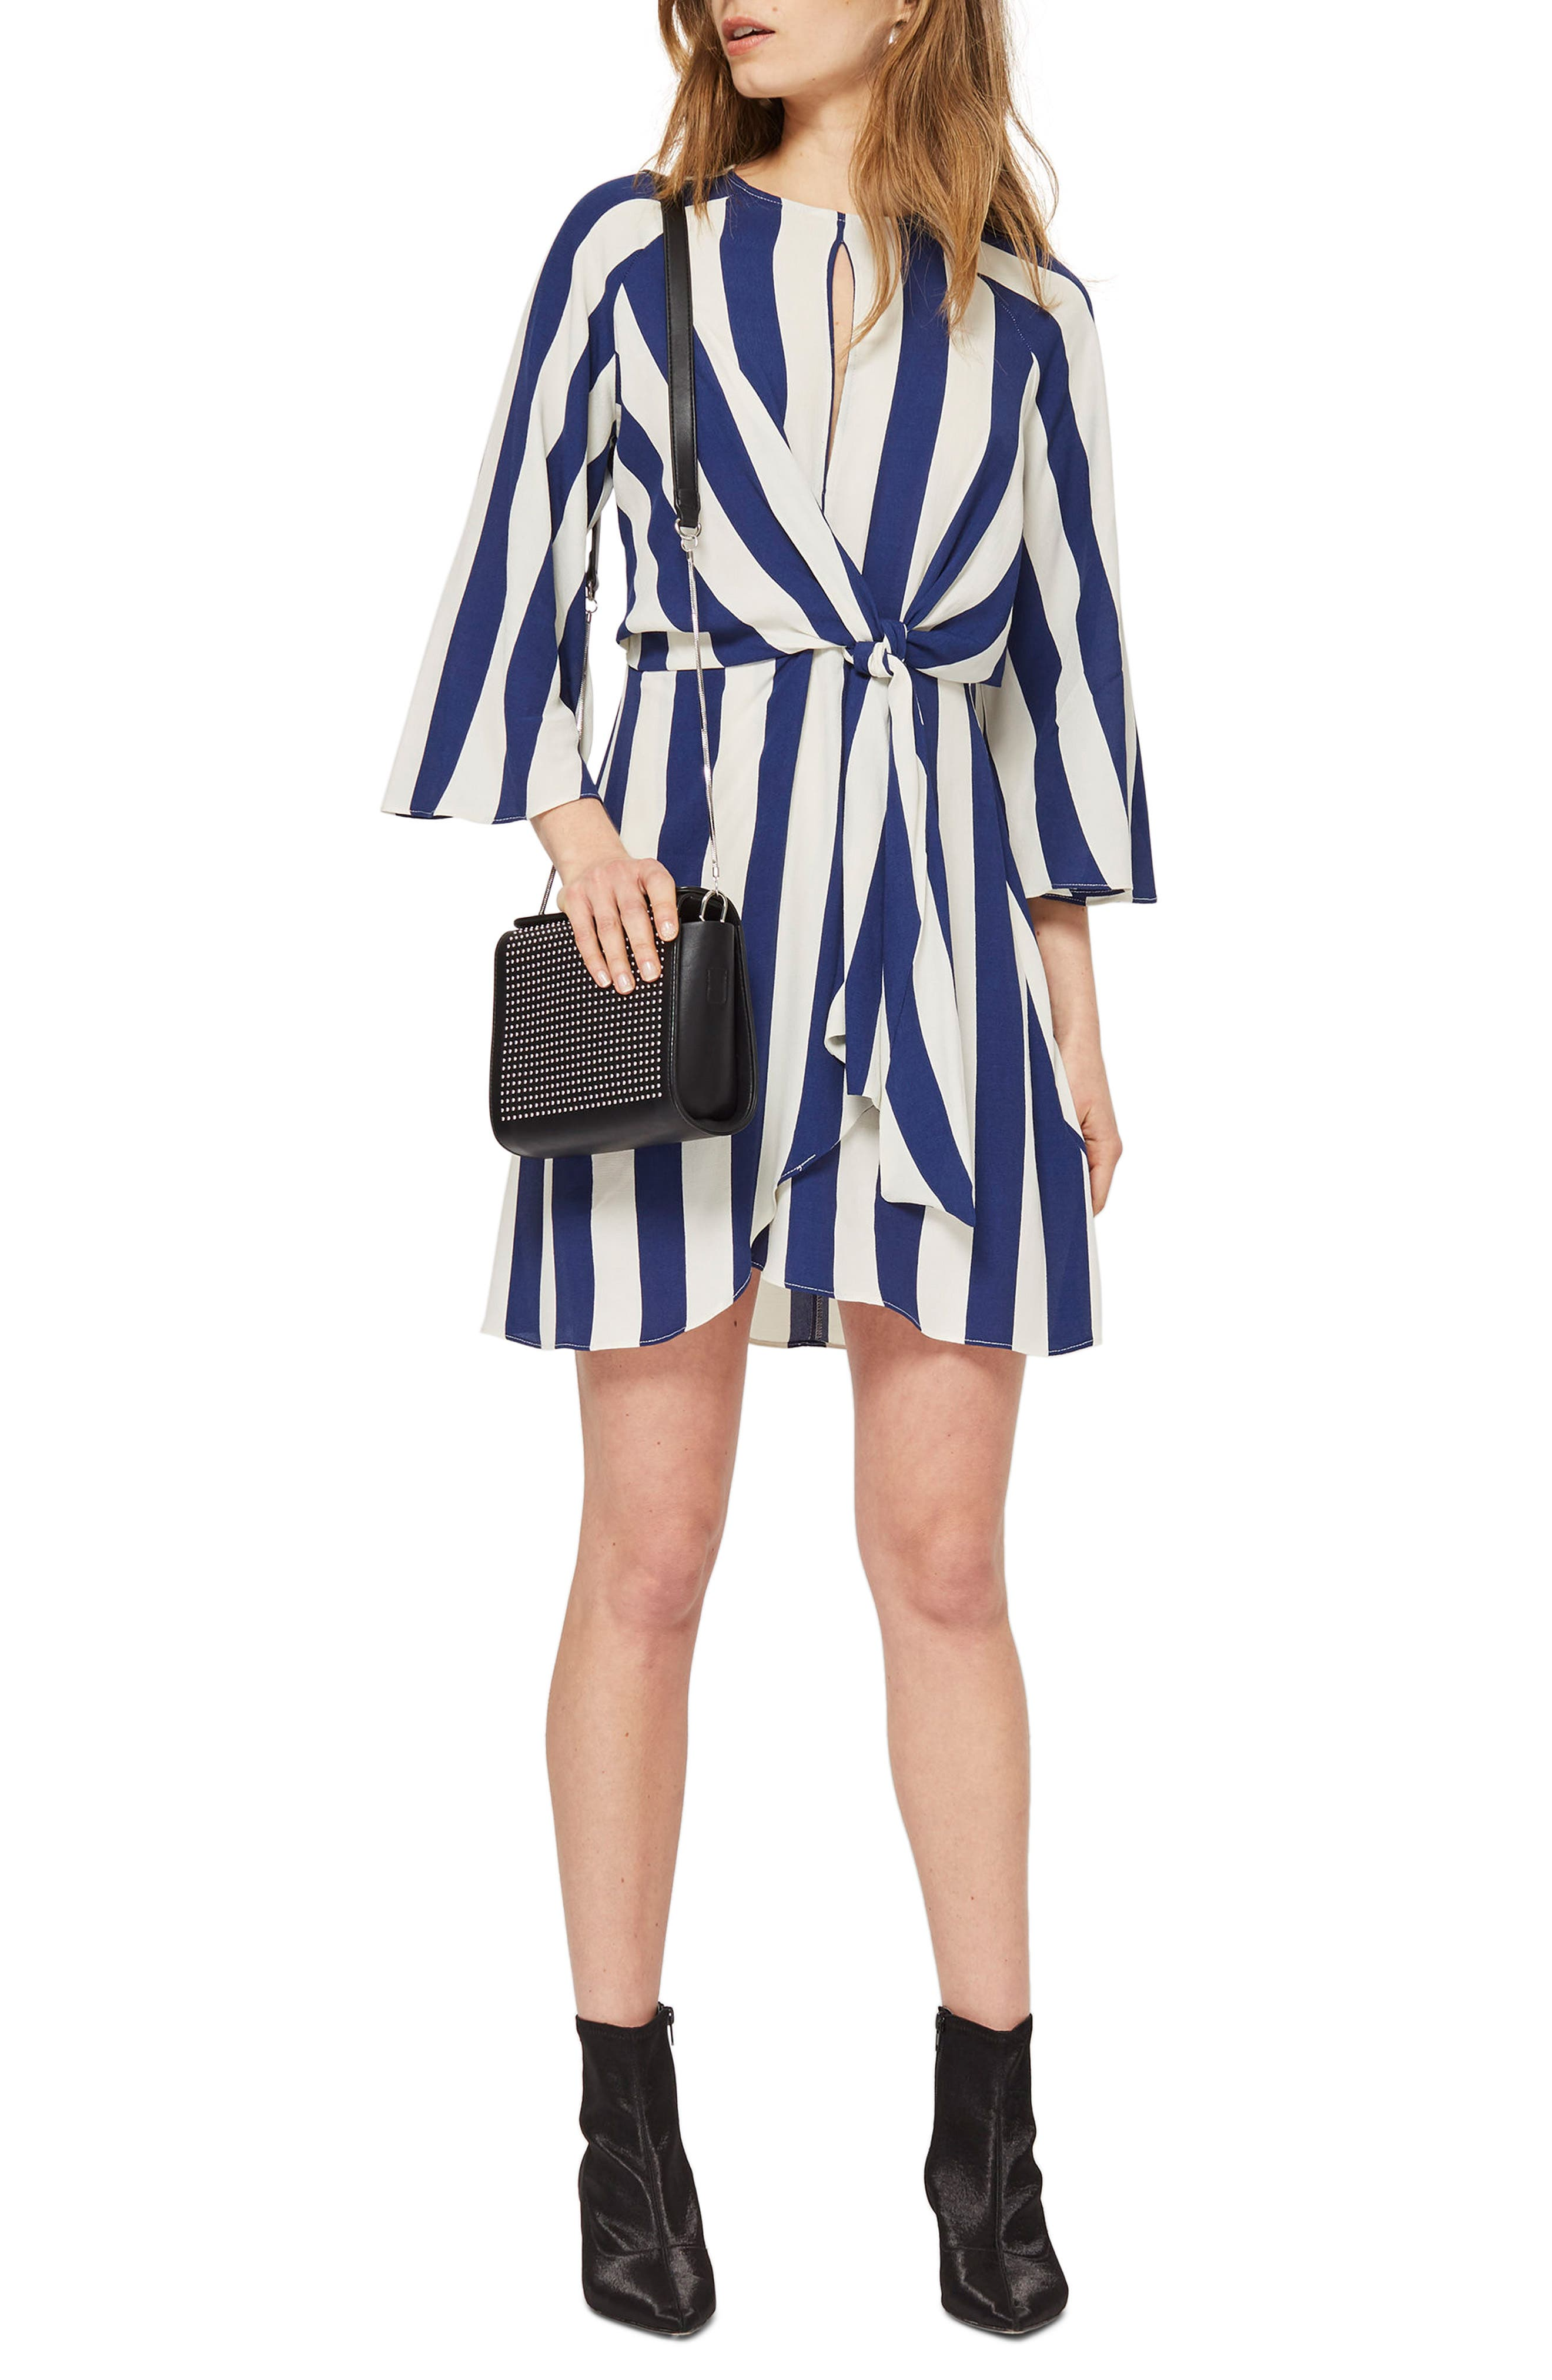 Alternate Image 1 Selected - Topshop Humbug Stripe Knot Dress